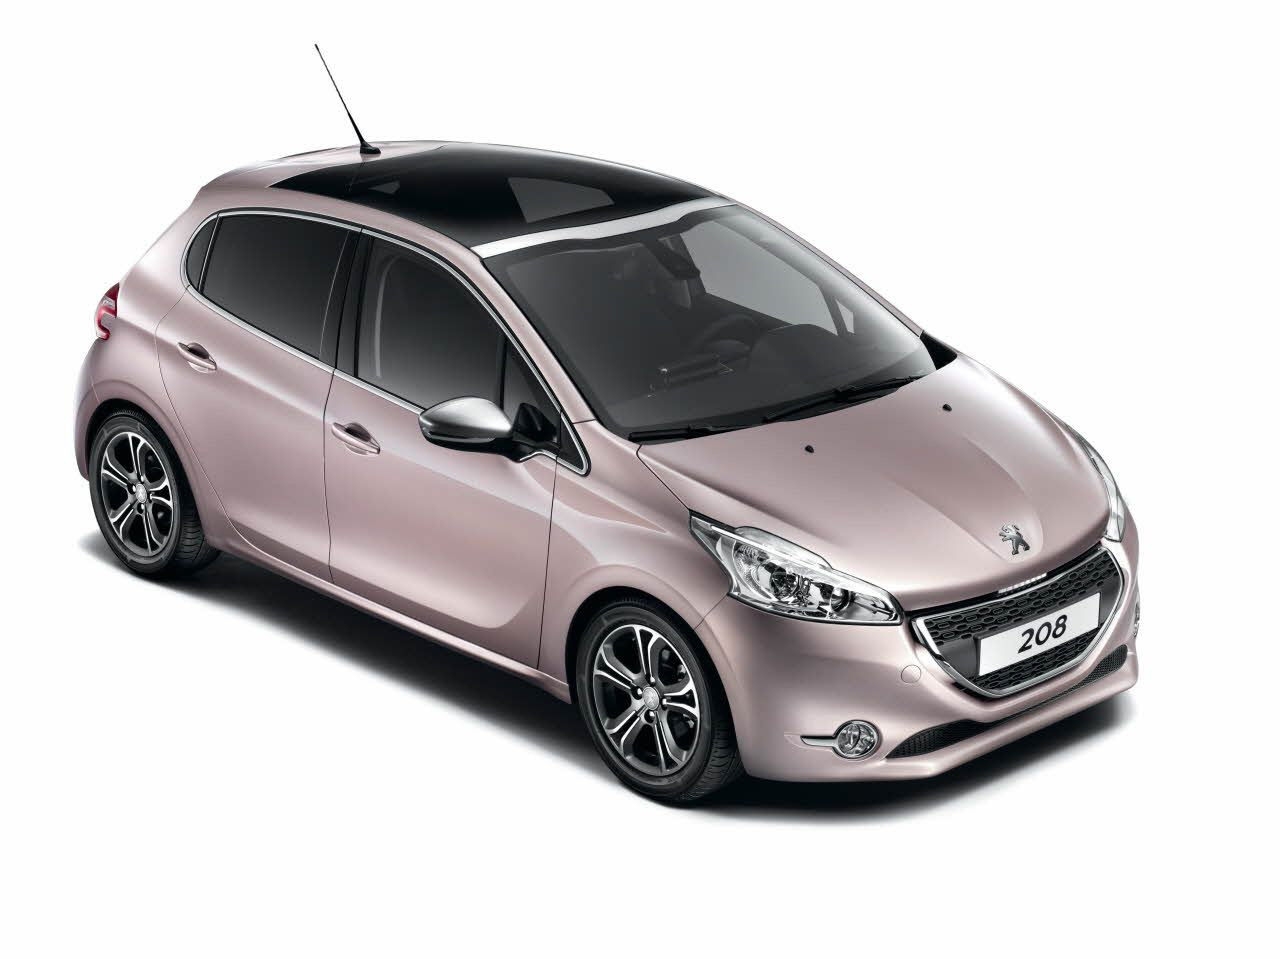 Interested By The New Peugeot 208 Look At The Review From